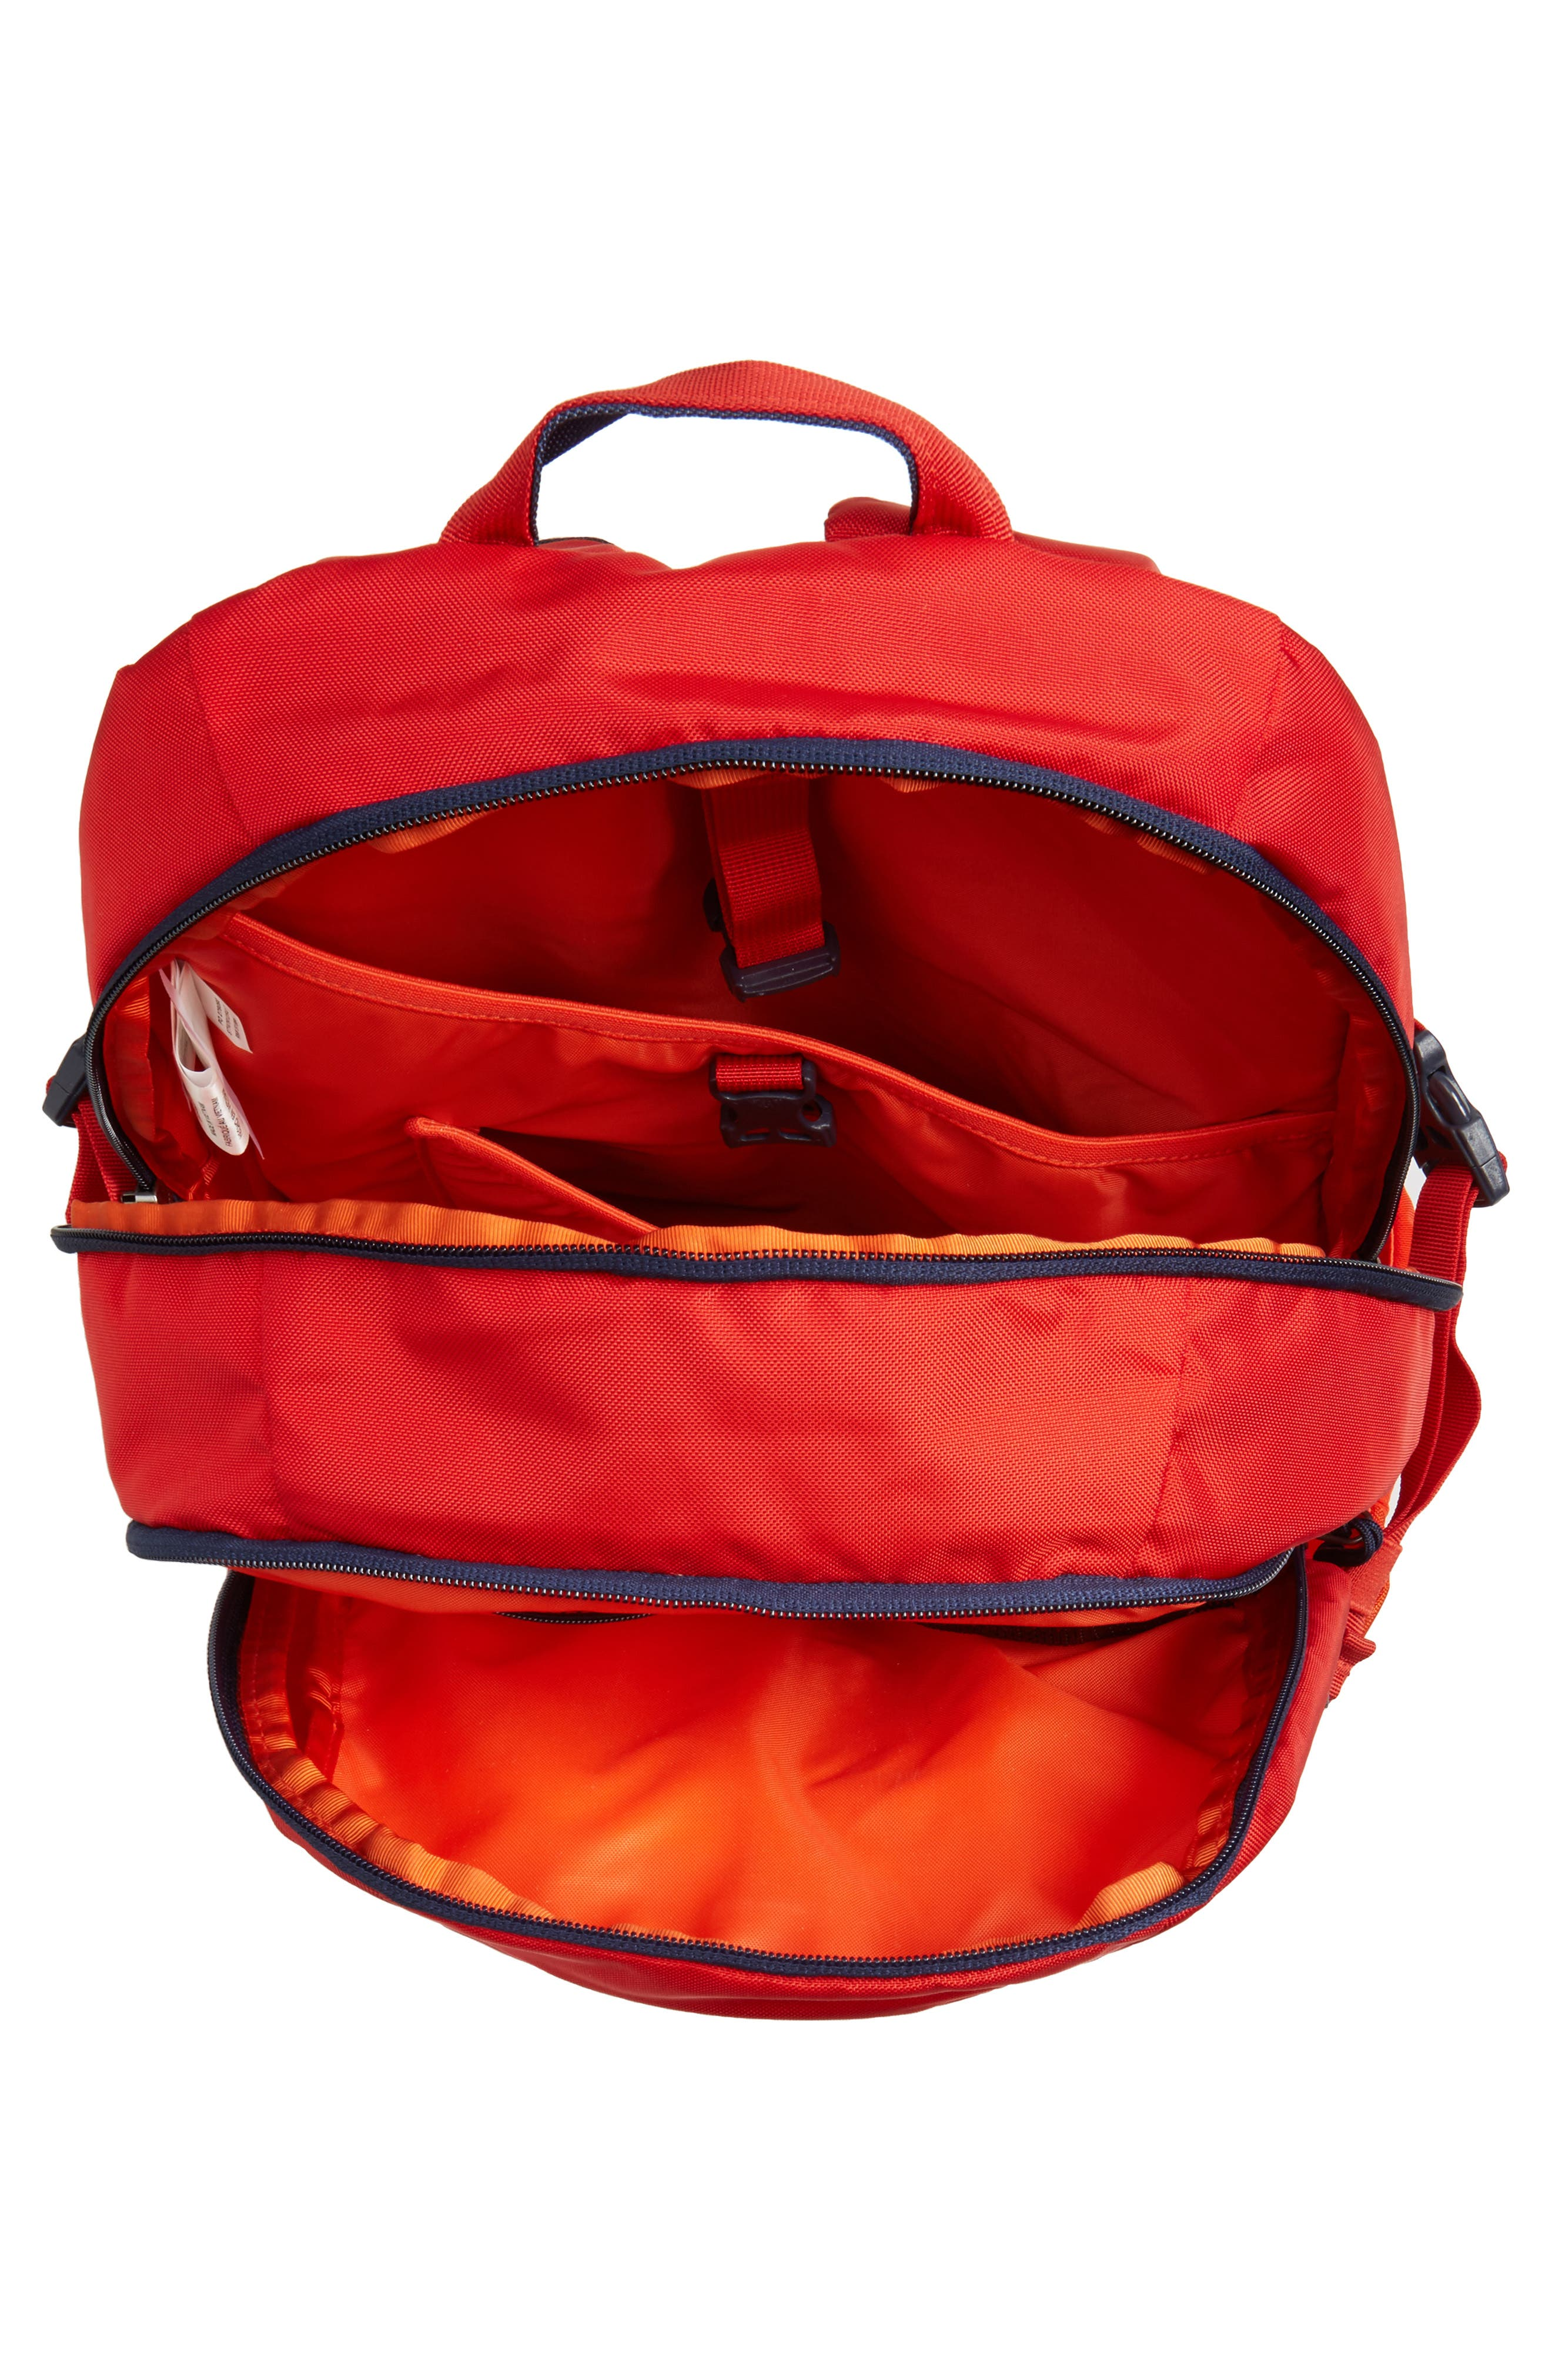 28L Refugio Backpack,                             Alternate thumbnail 3, color,                             Paintbrush Red